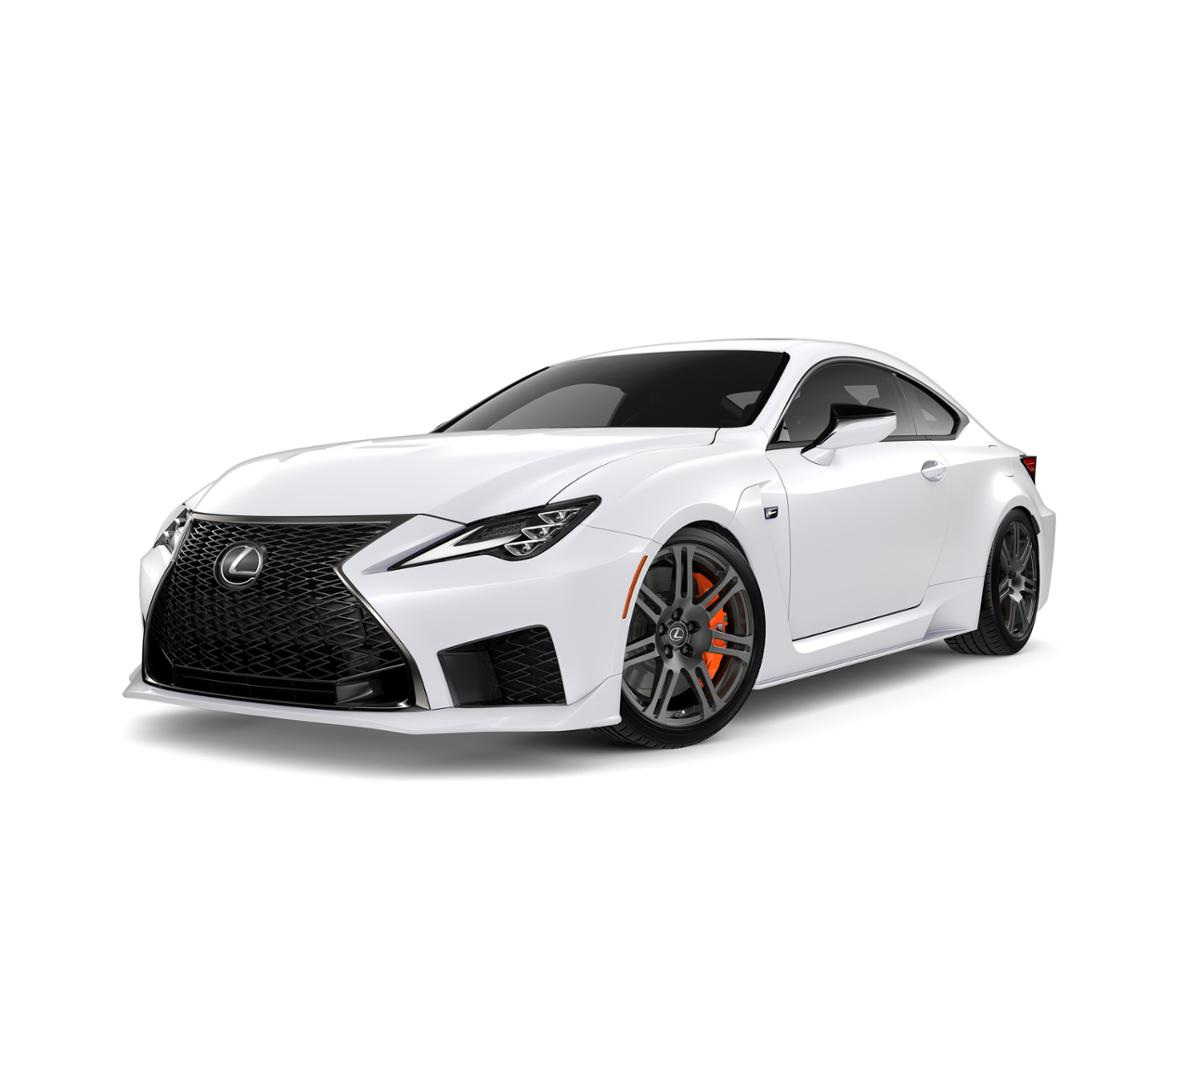 2020 Lexus RC F Vehicle Photo in Santa Monica, CA 90404